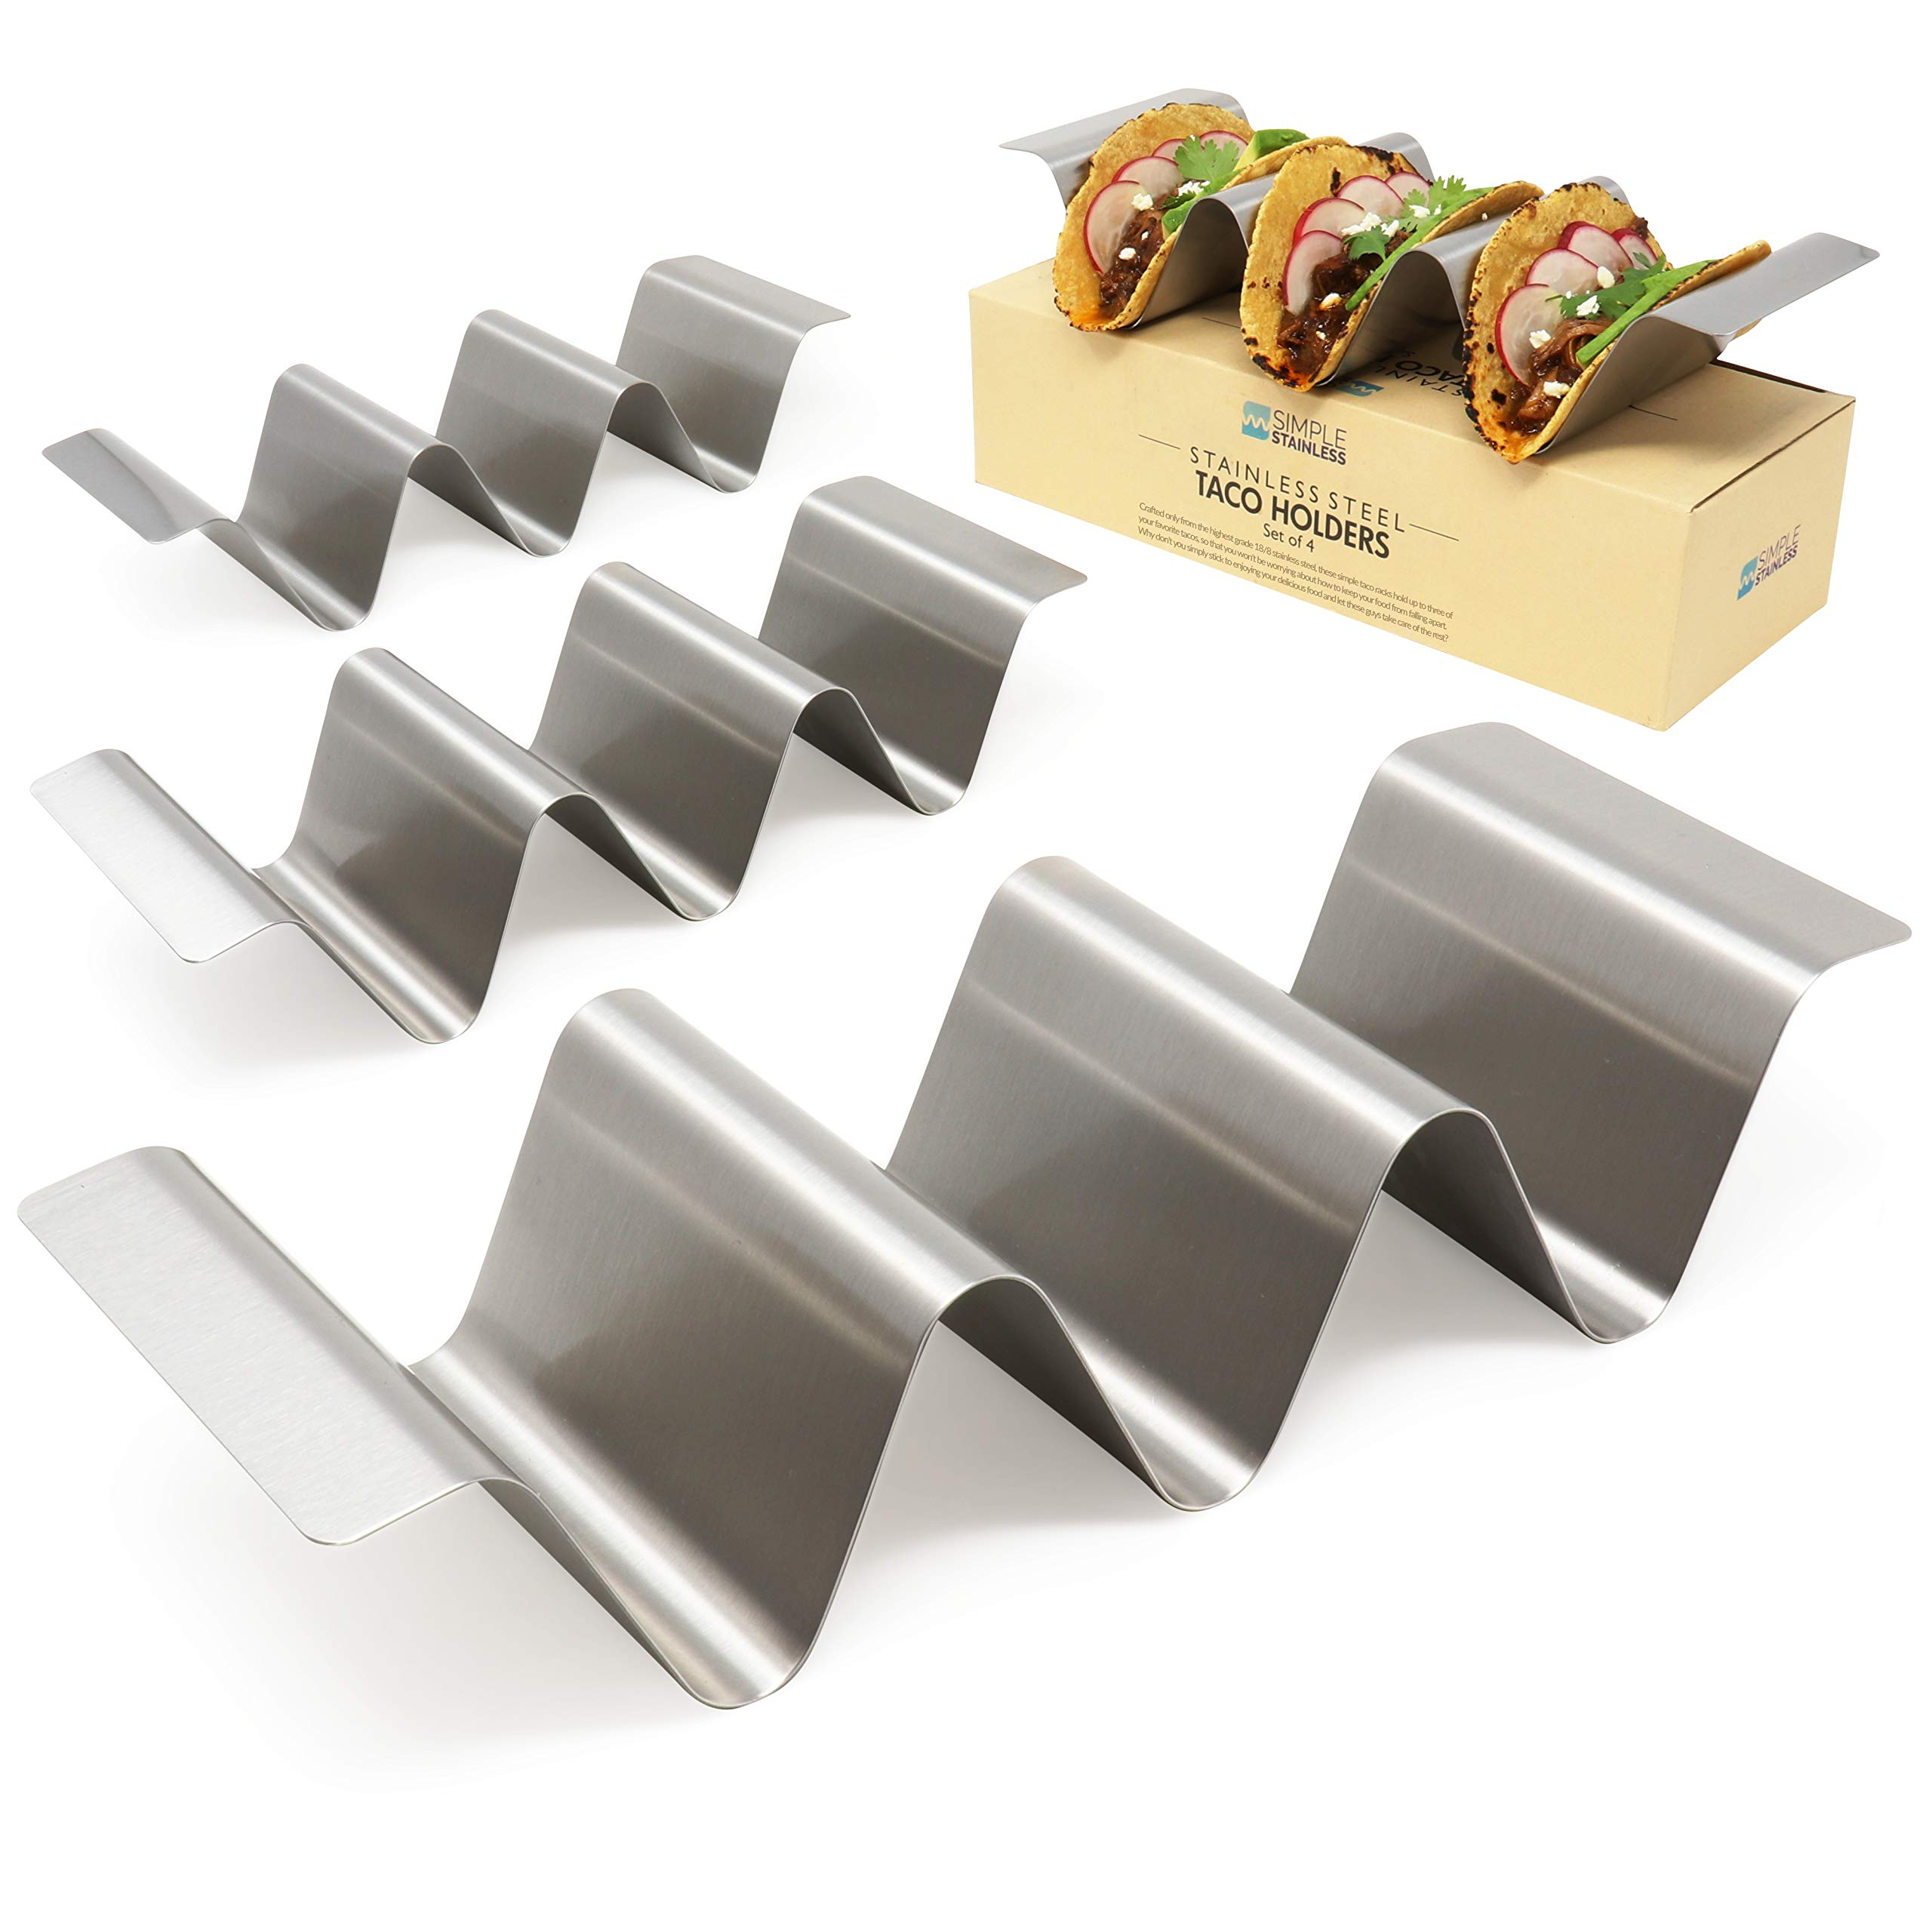 SimpleStainless Taco Holders - 3 Compartment with Unique Round Grooves Stainless Steel for Restaurant and Home Use